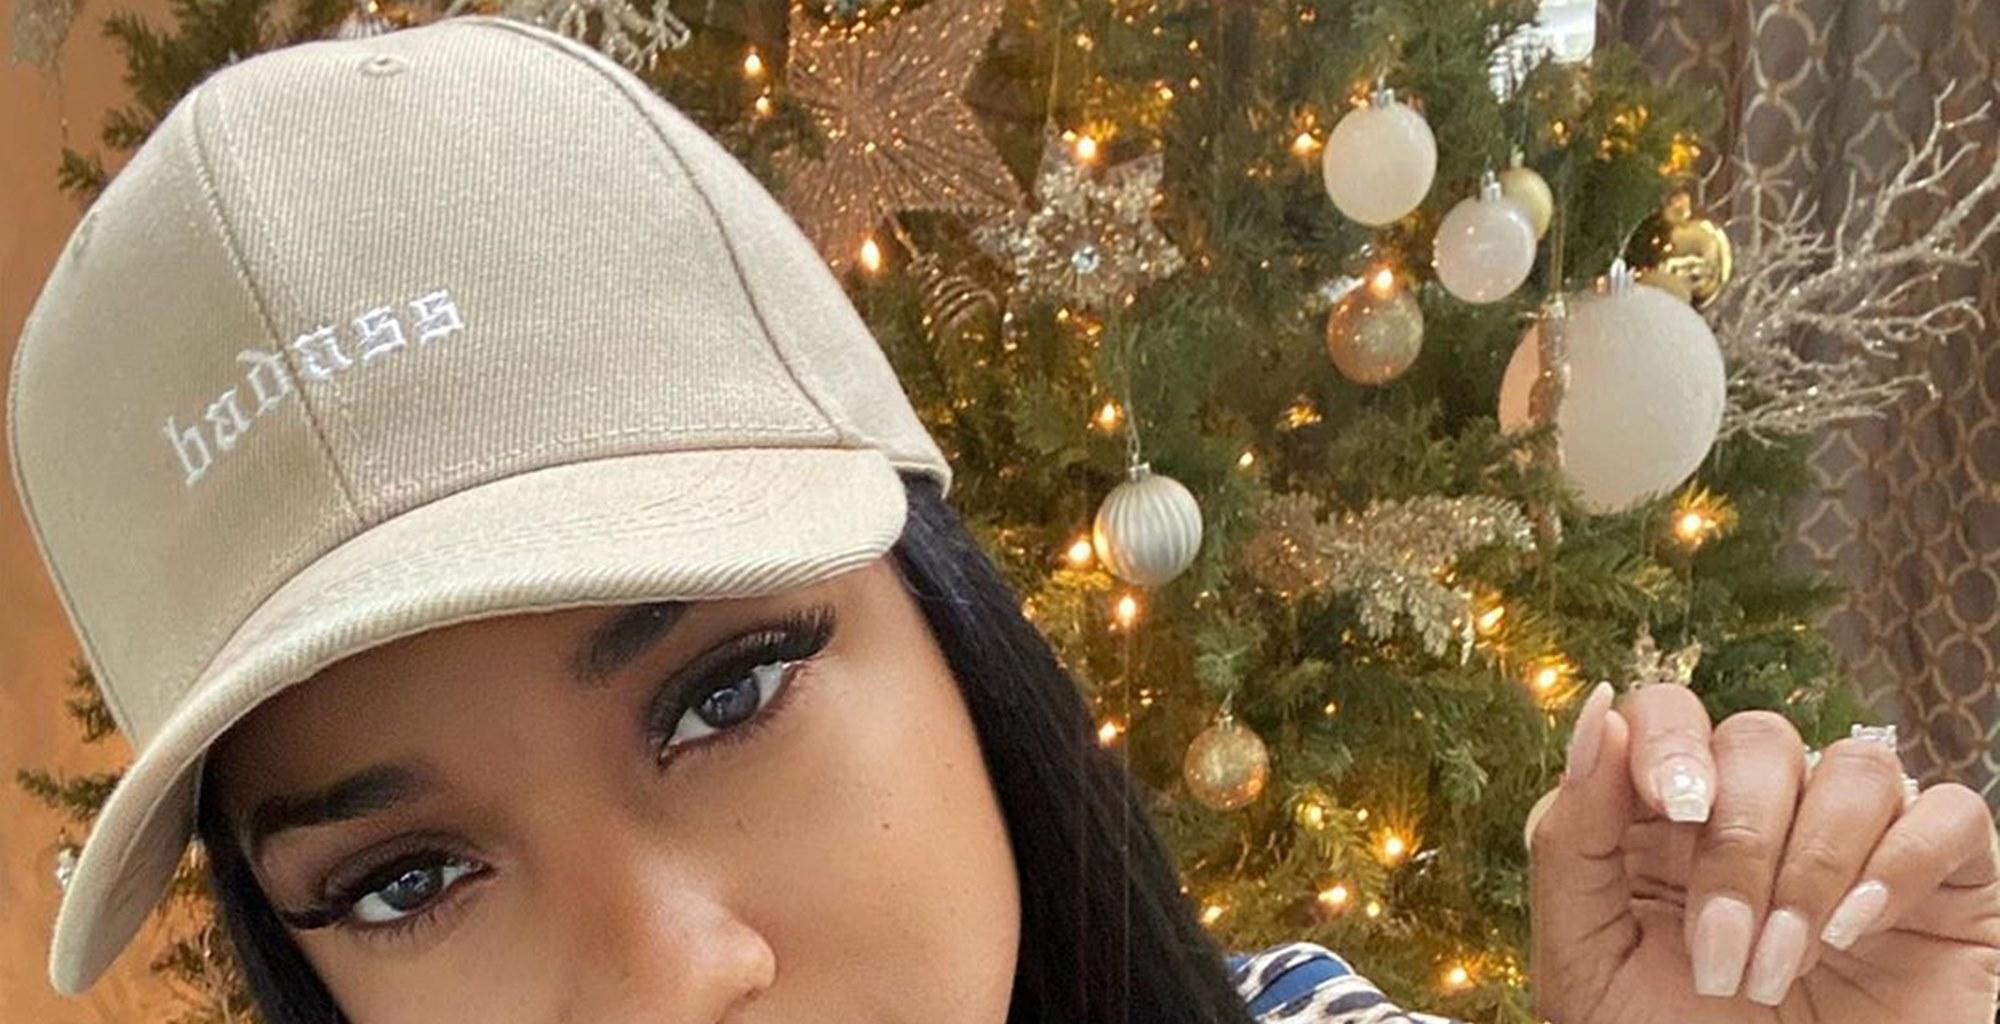 Toya Wright And Robert Rushing's Young Daughter, Reign, Lands Her First Modeling Gig And The Photos Are Gorgeous -- Reginae Carter's Sister Is A Real Star